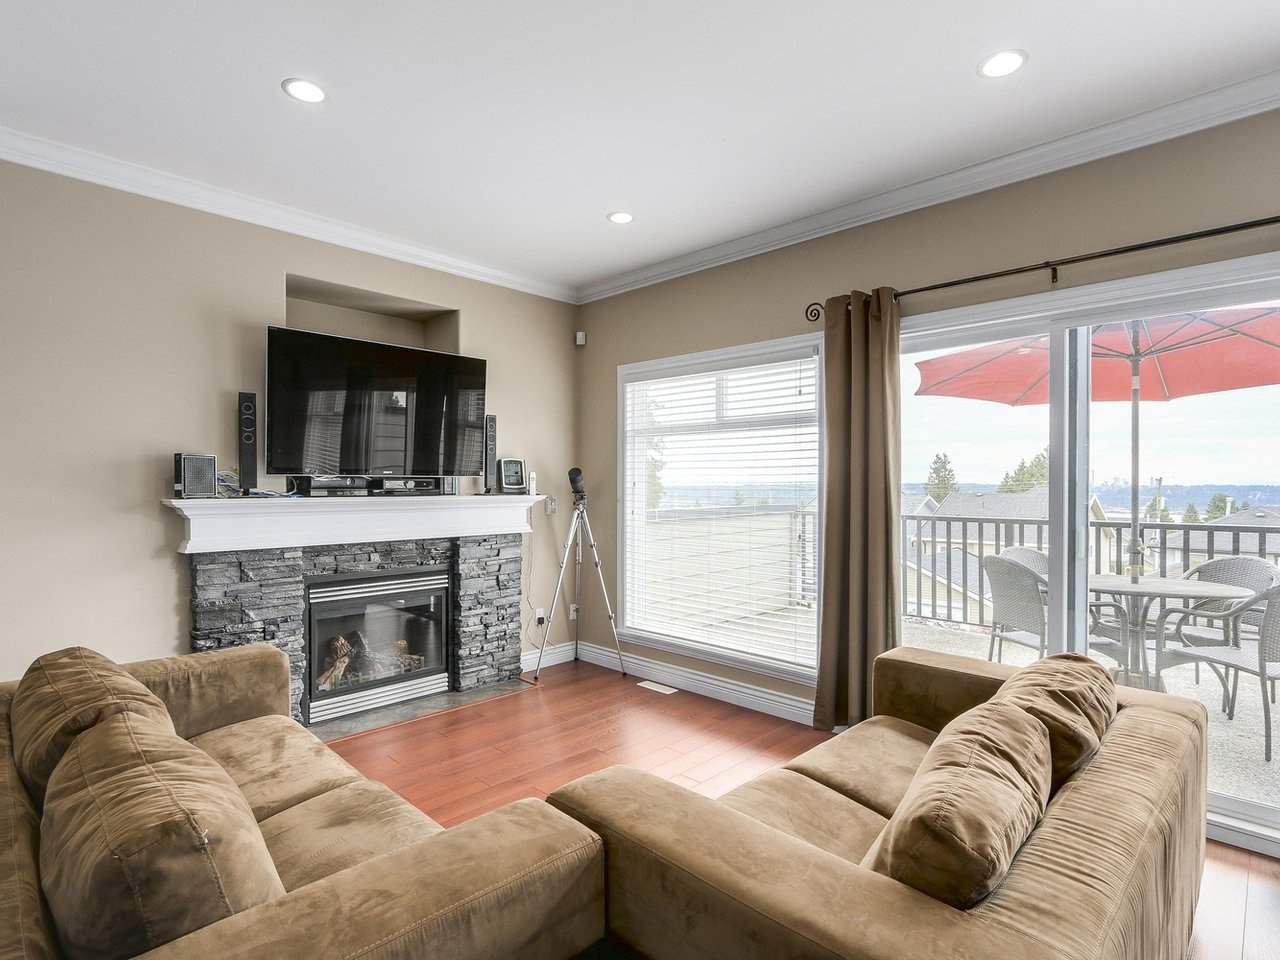 Photo 3: Photos: 1044B CHARLAND Avenue in Coquitlam: Central Coquitlam House 1/2 Duplex for sale : MLS®# R2172343